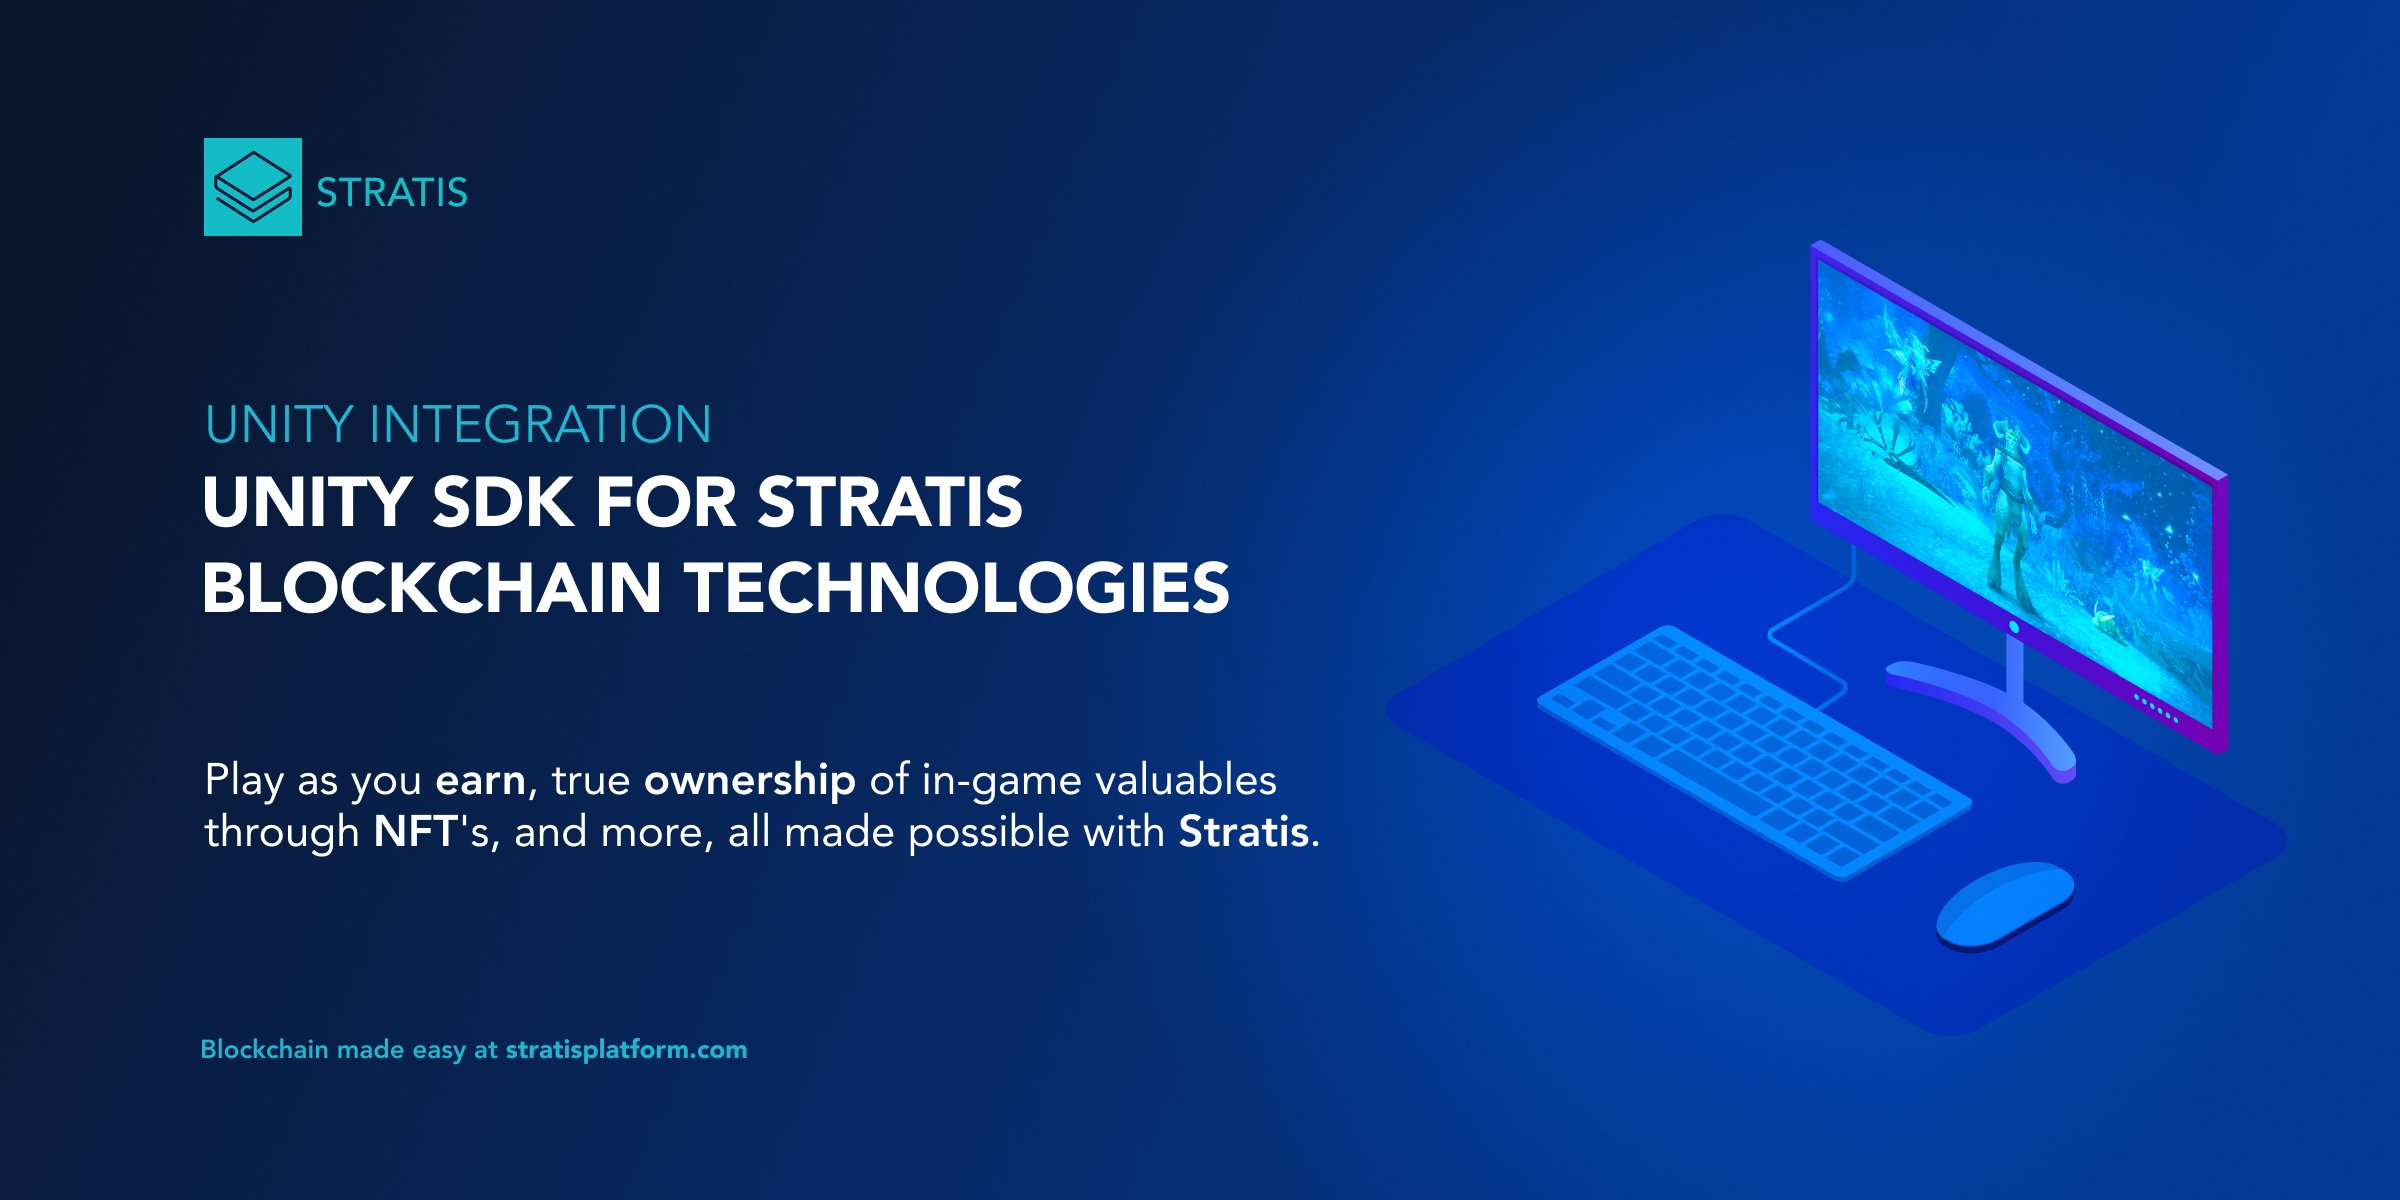 Unity SDK brings Stratis Smart Contracts to games